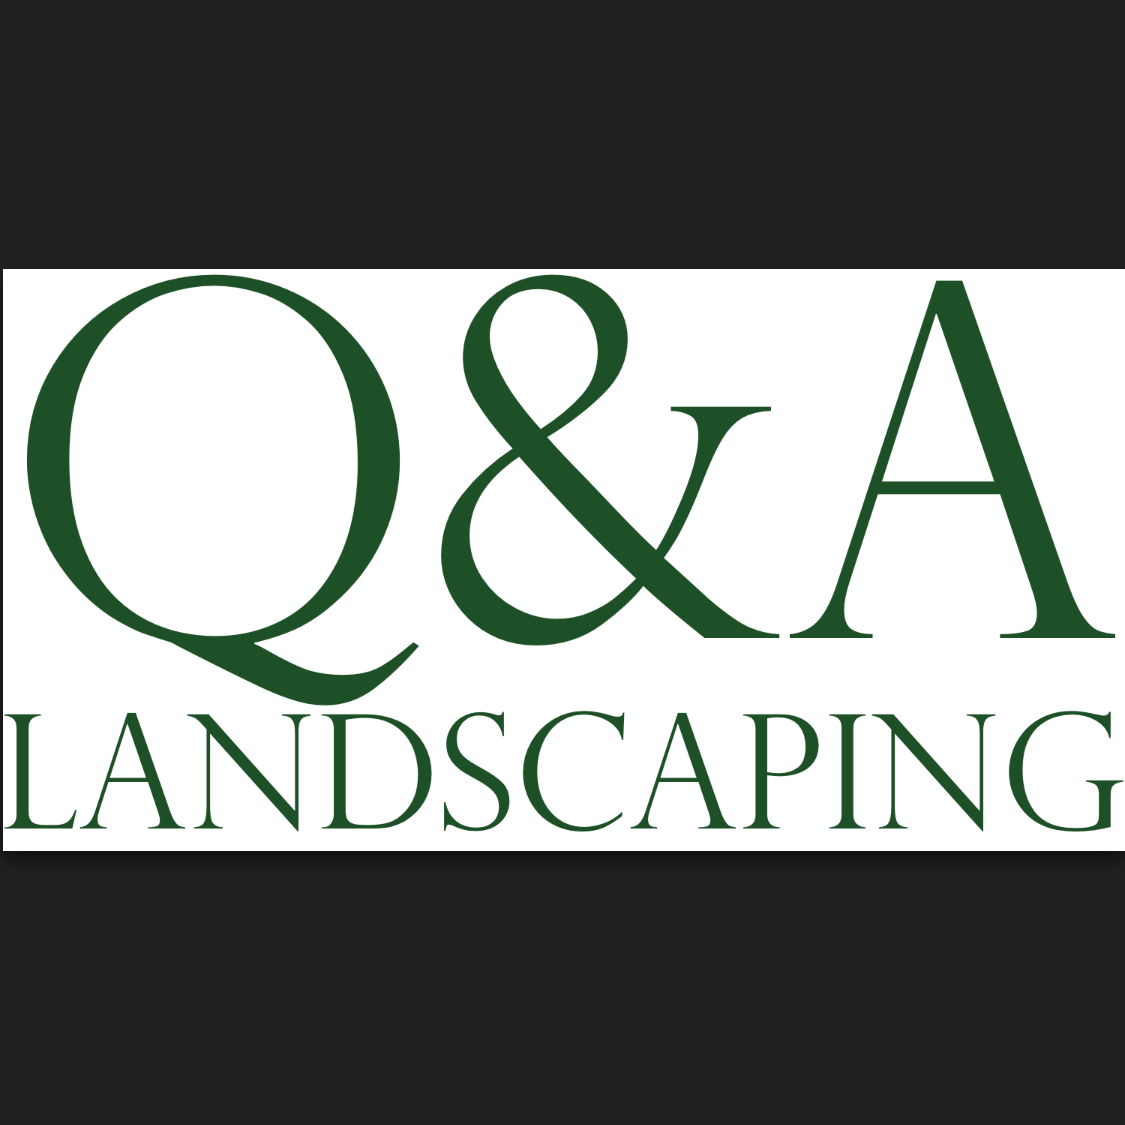 Q&A Landscaping